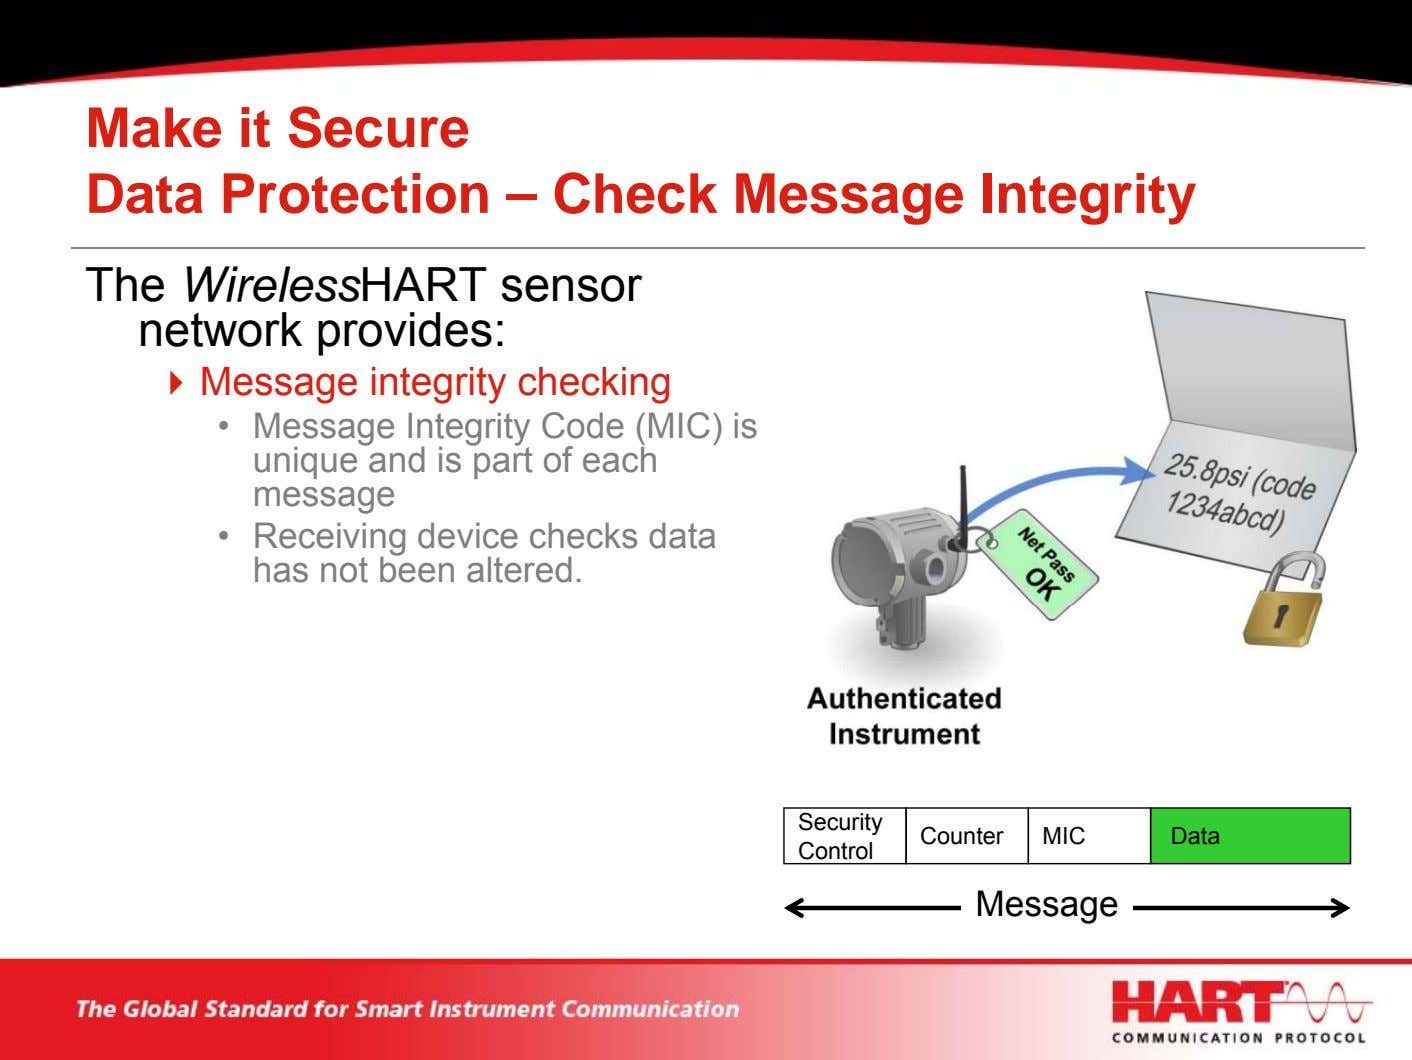 Make it Secure Data Protection – Check Message Integrity The WirelessHART sensor network provides: Message